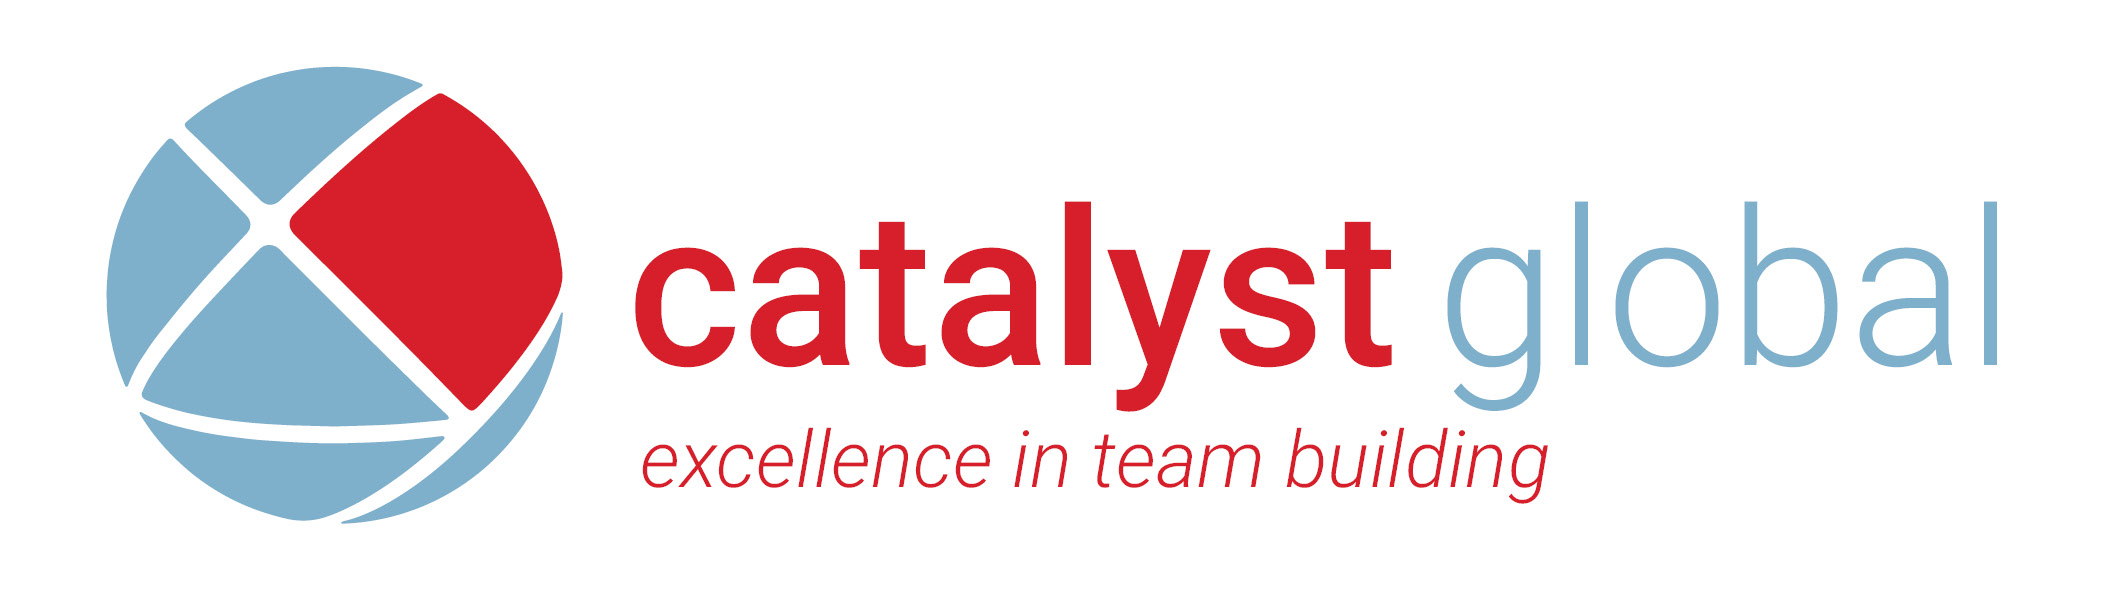 catalyst for excellence Are you ready for performance excellence breakthrough contact us now for sustained performance excellence we are quality management and organizational excellence catalysts based in richards bay, kwazulu-natal, south africa about us our mission & values | contact us.